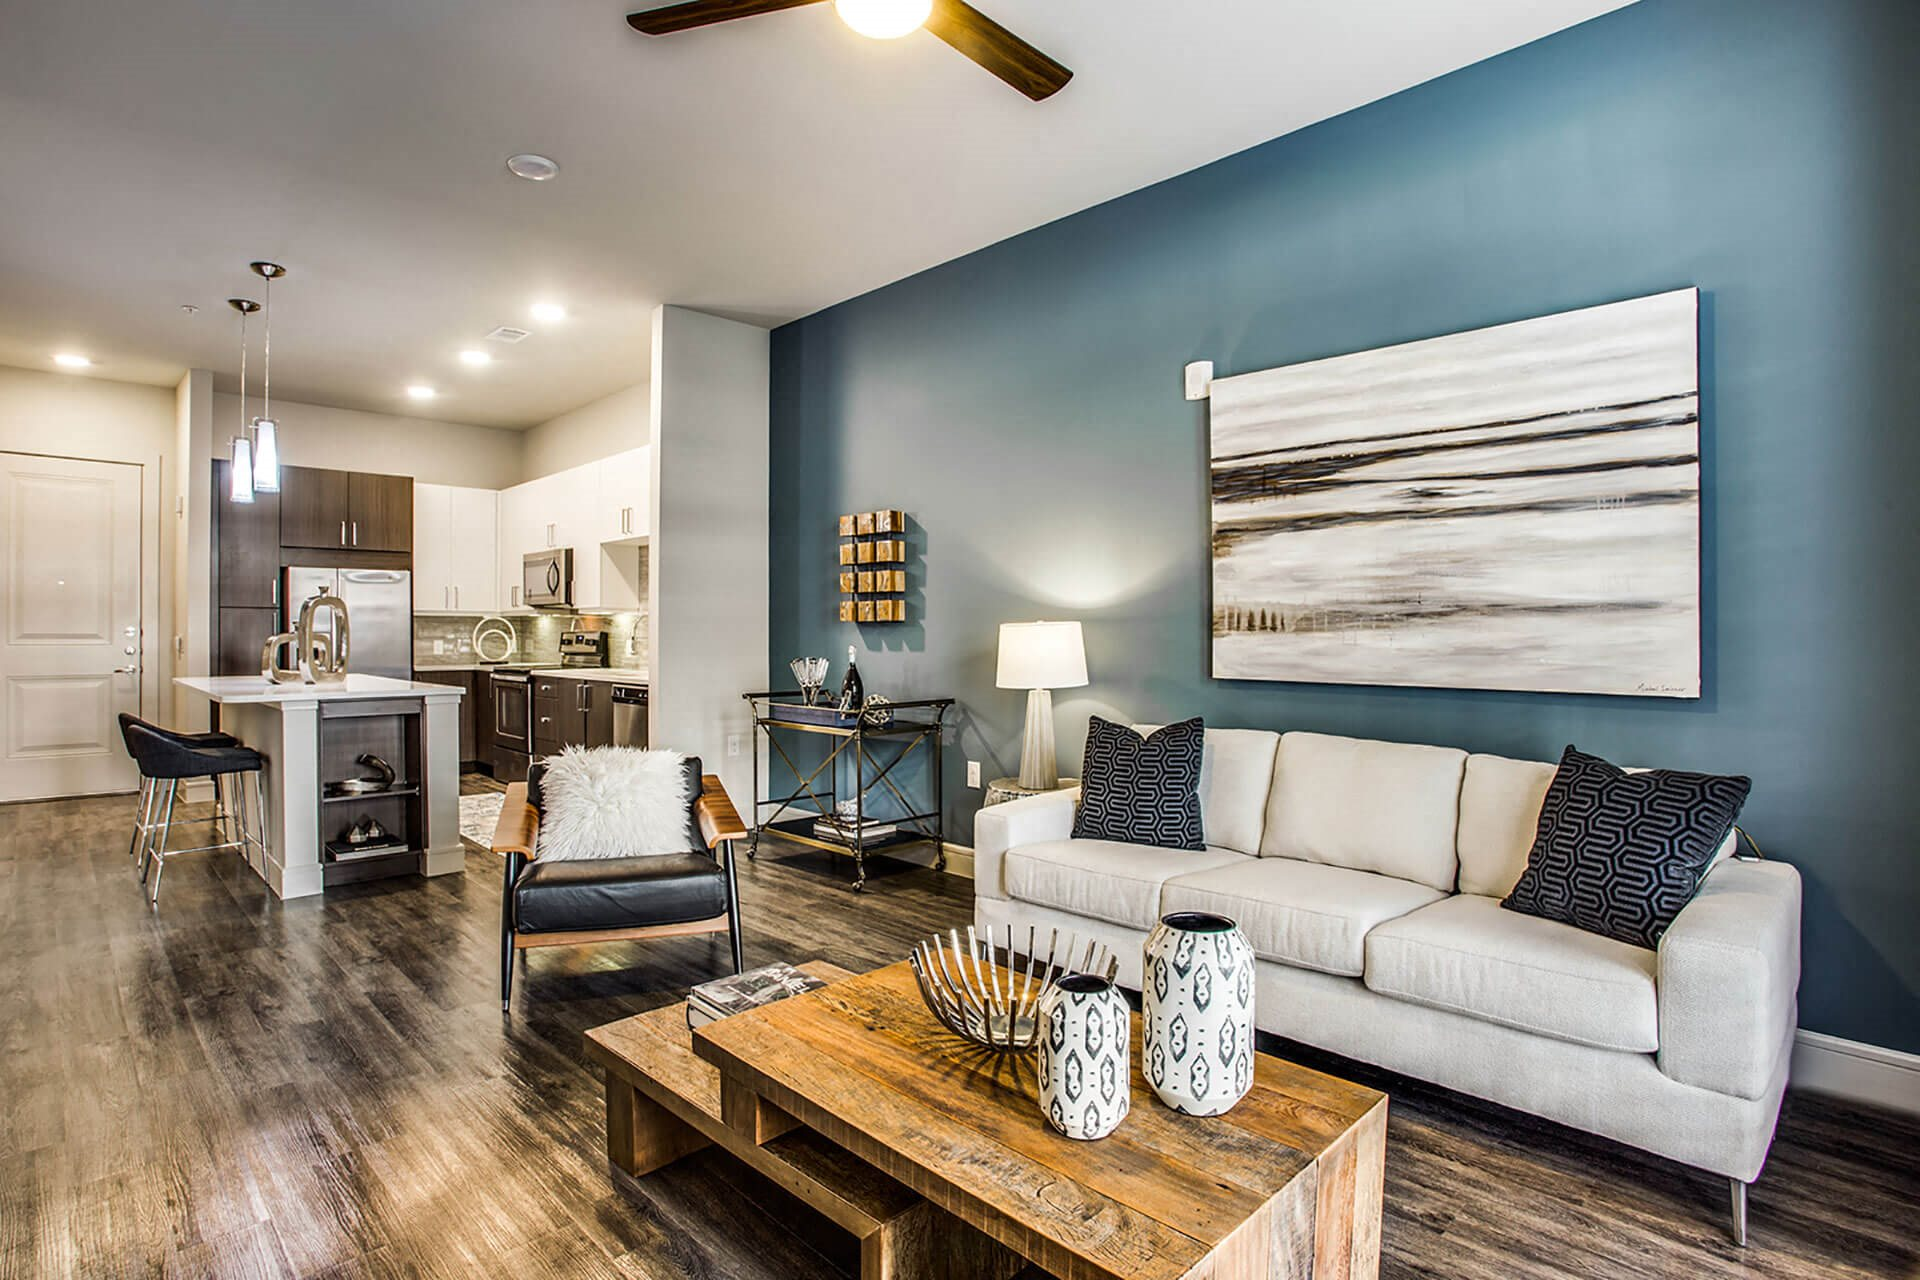 Thermostats And Built-In Speakers at Windsor by the Galleria, 13290 Noel Rd, Dallas